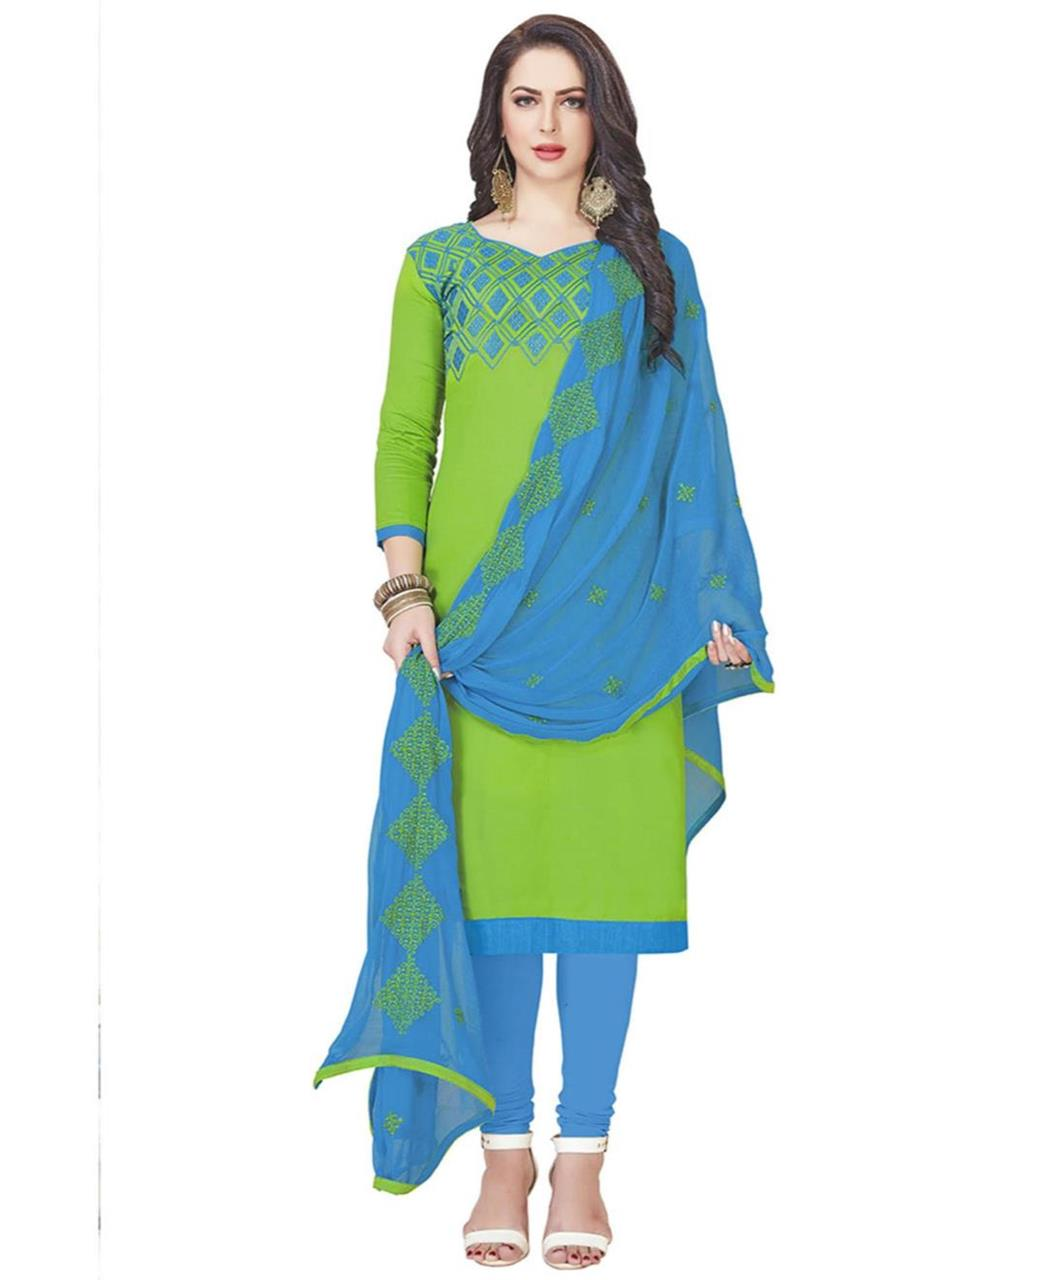 Embroidered Cotton LimeGreen Straight Cut Salwar